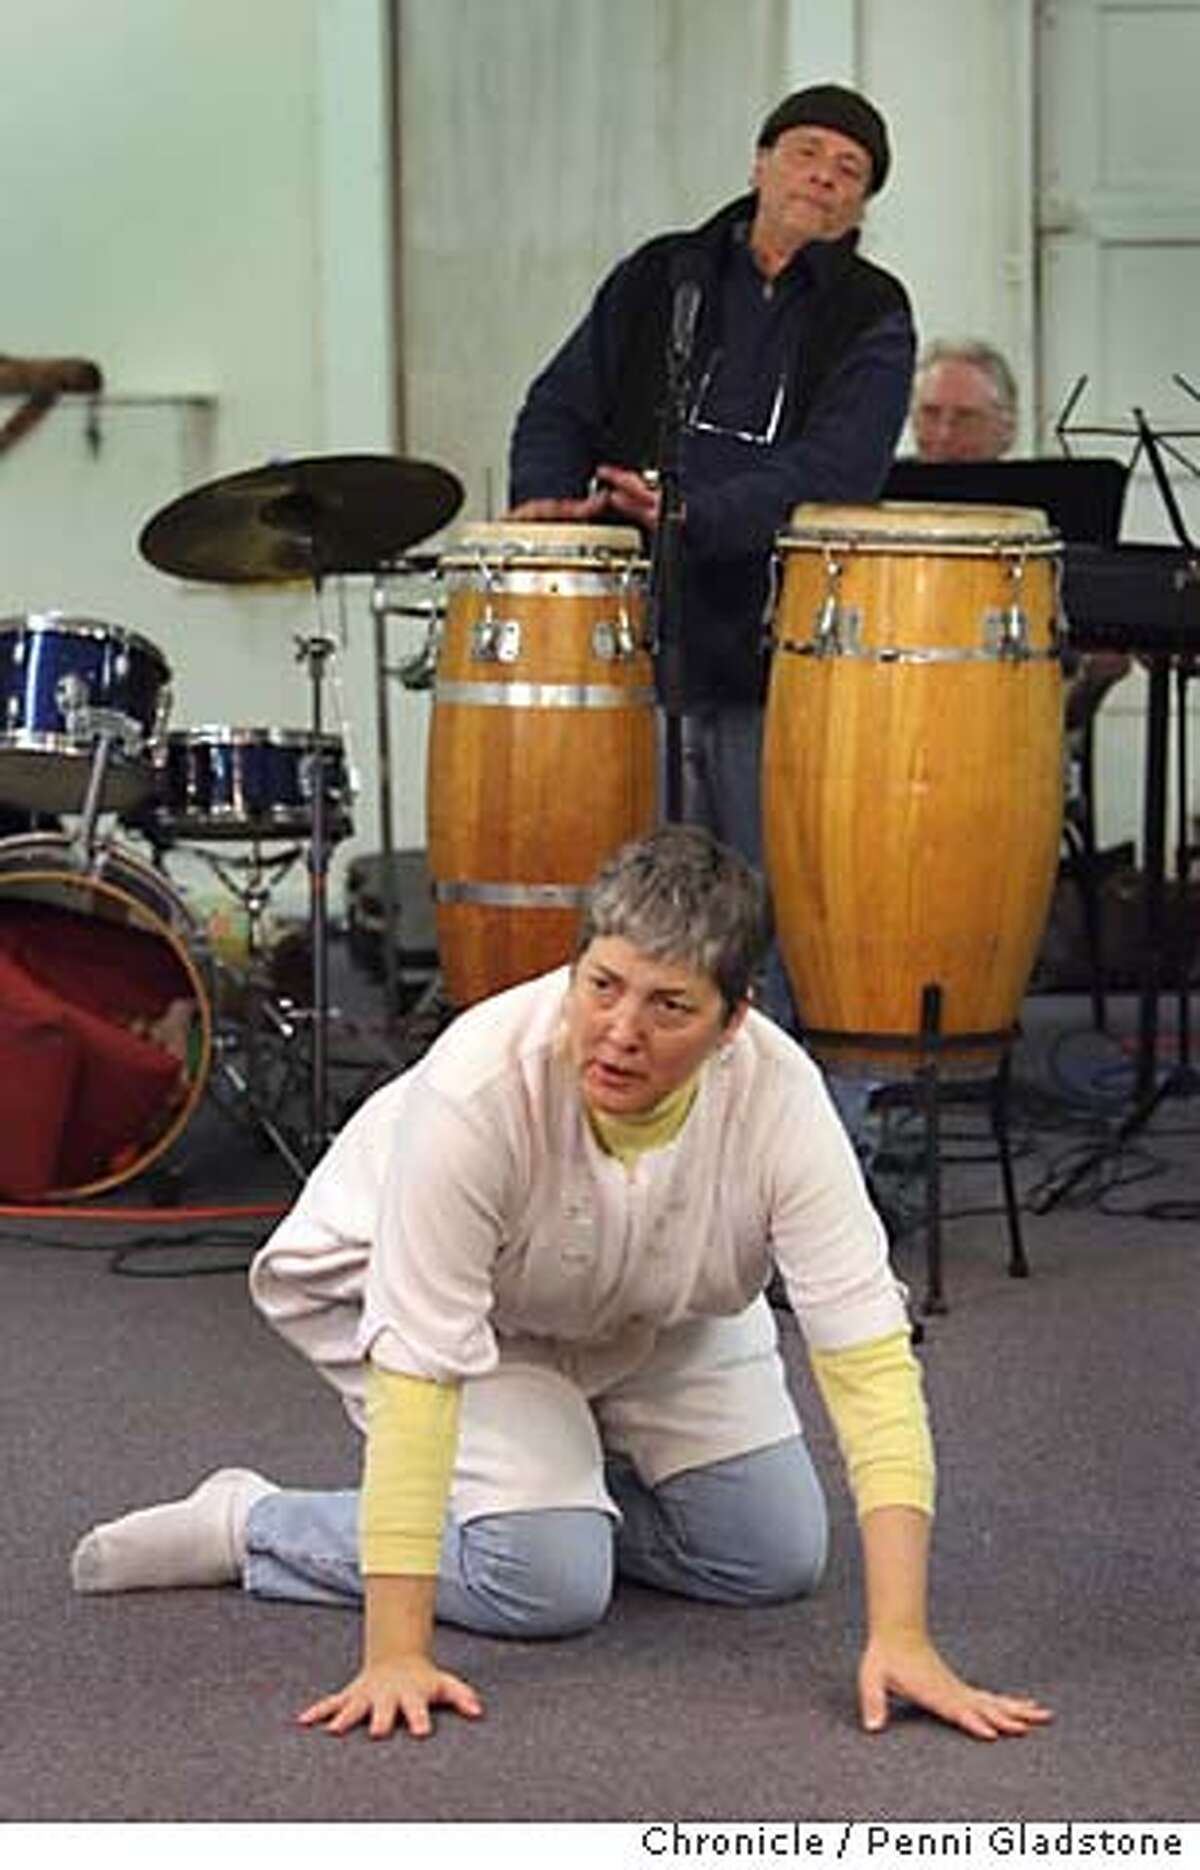 ERNST Actress Carla Spindt during rehearsal with Alternative Theatre Ensemble. In background on drums is Bob Ernst. They will present the world premiere of